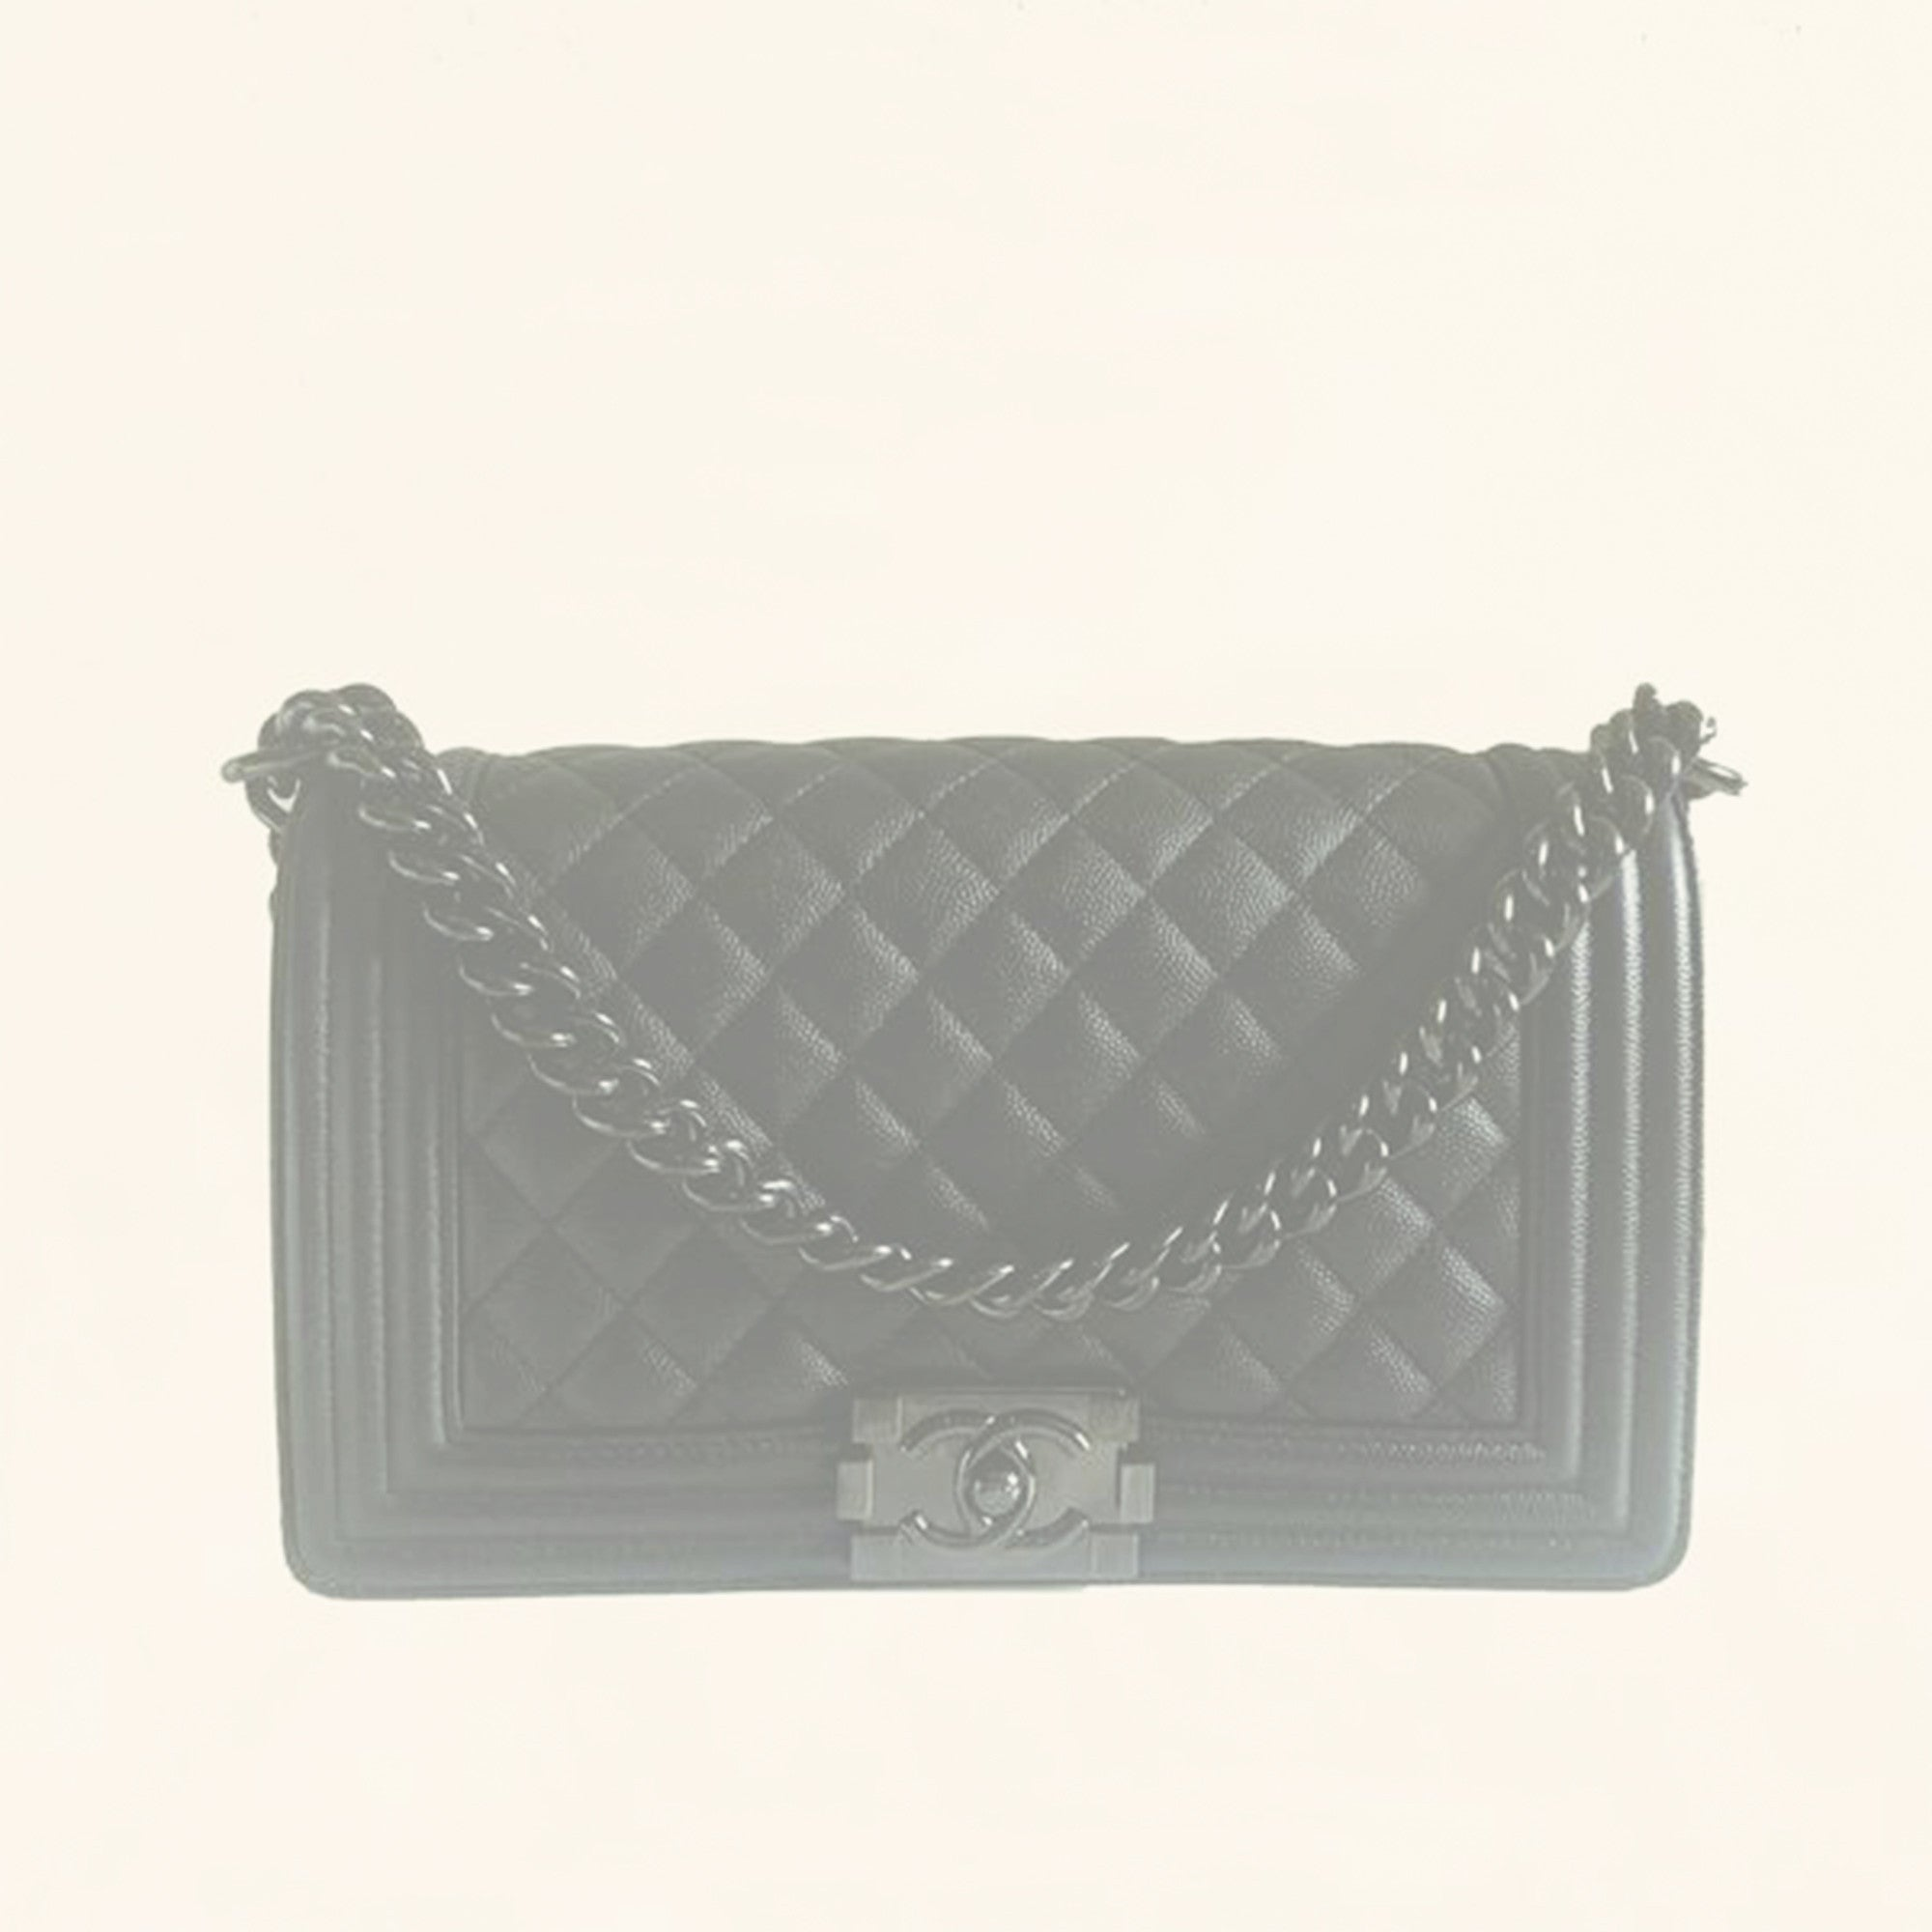 b553fe340aa3 Chanel | Iridescent Caviar So Black Boy Bag | Old Medium - The-Collectory